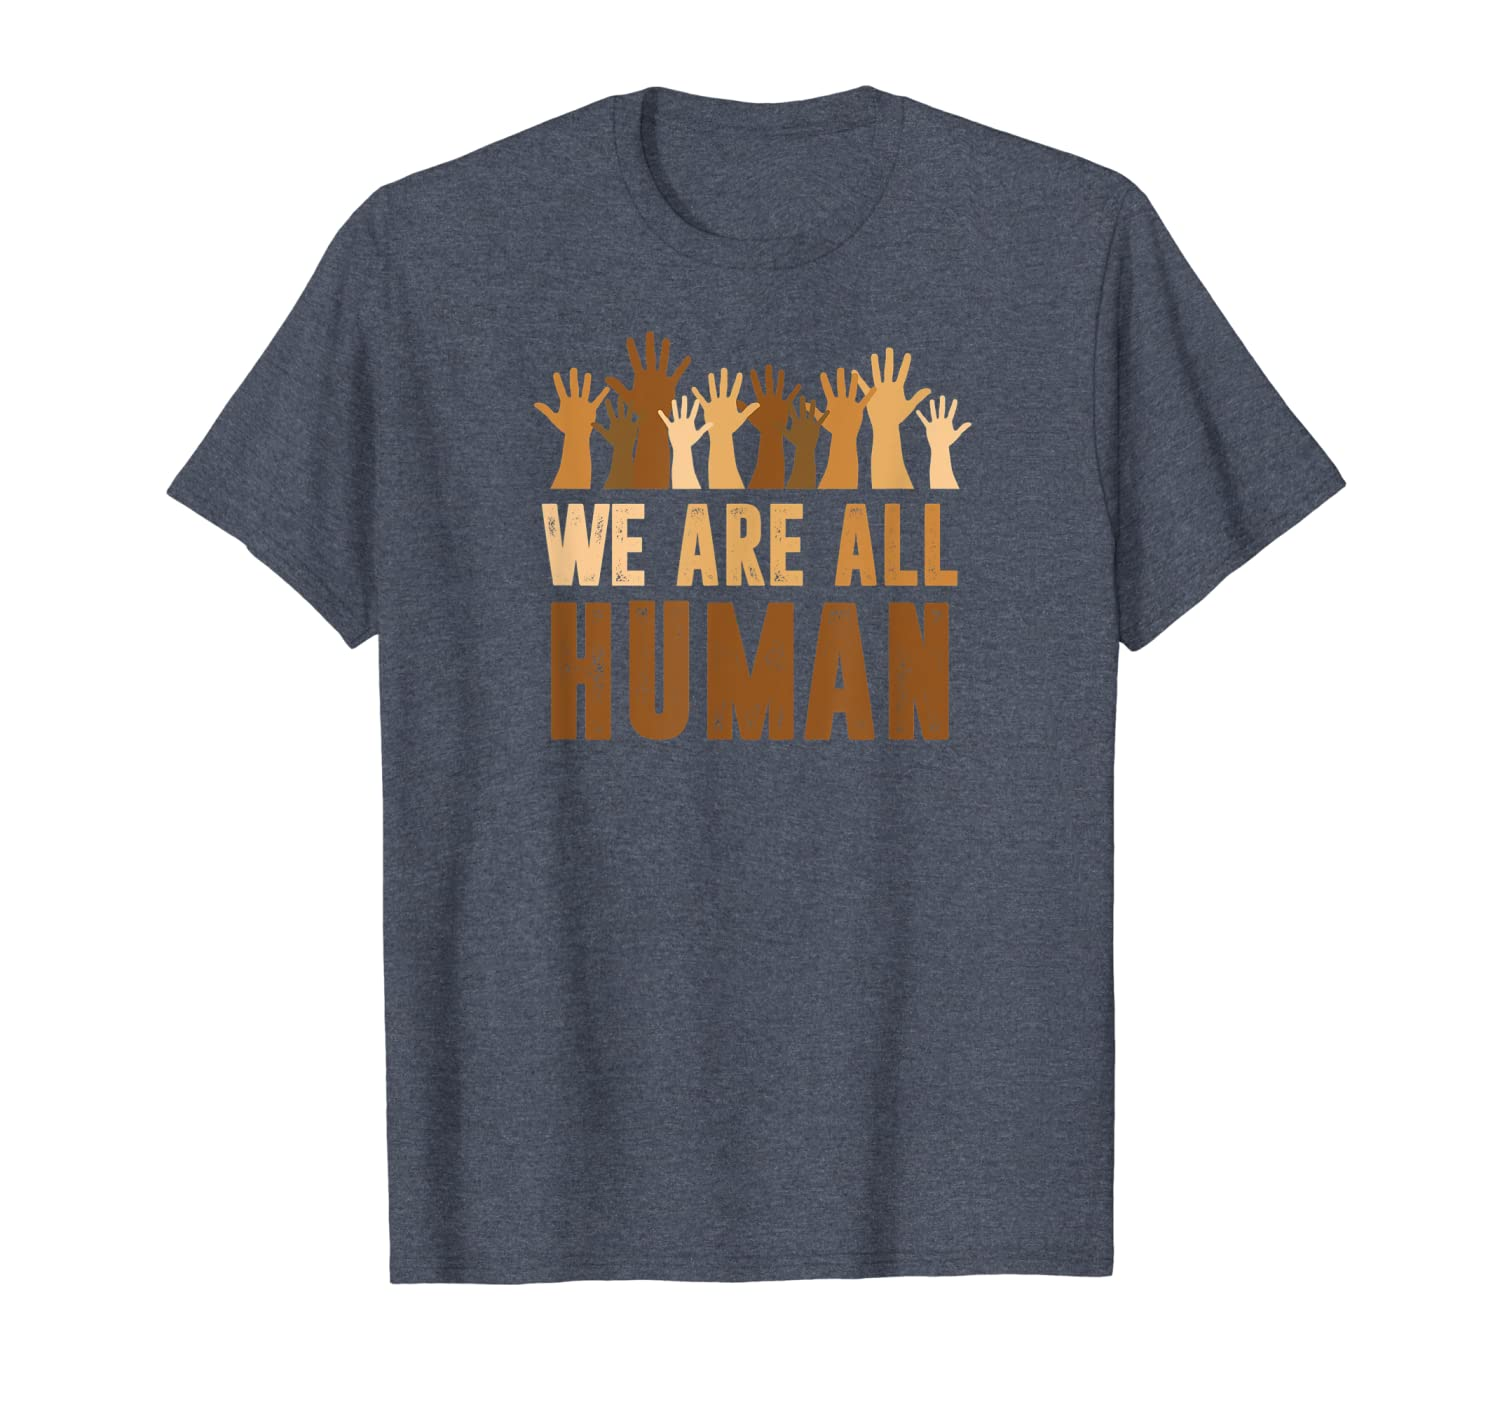 We Are All Human  Beautiful Equality  Black History Month T-Shirt Unisex Tshirt